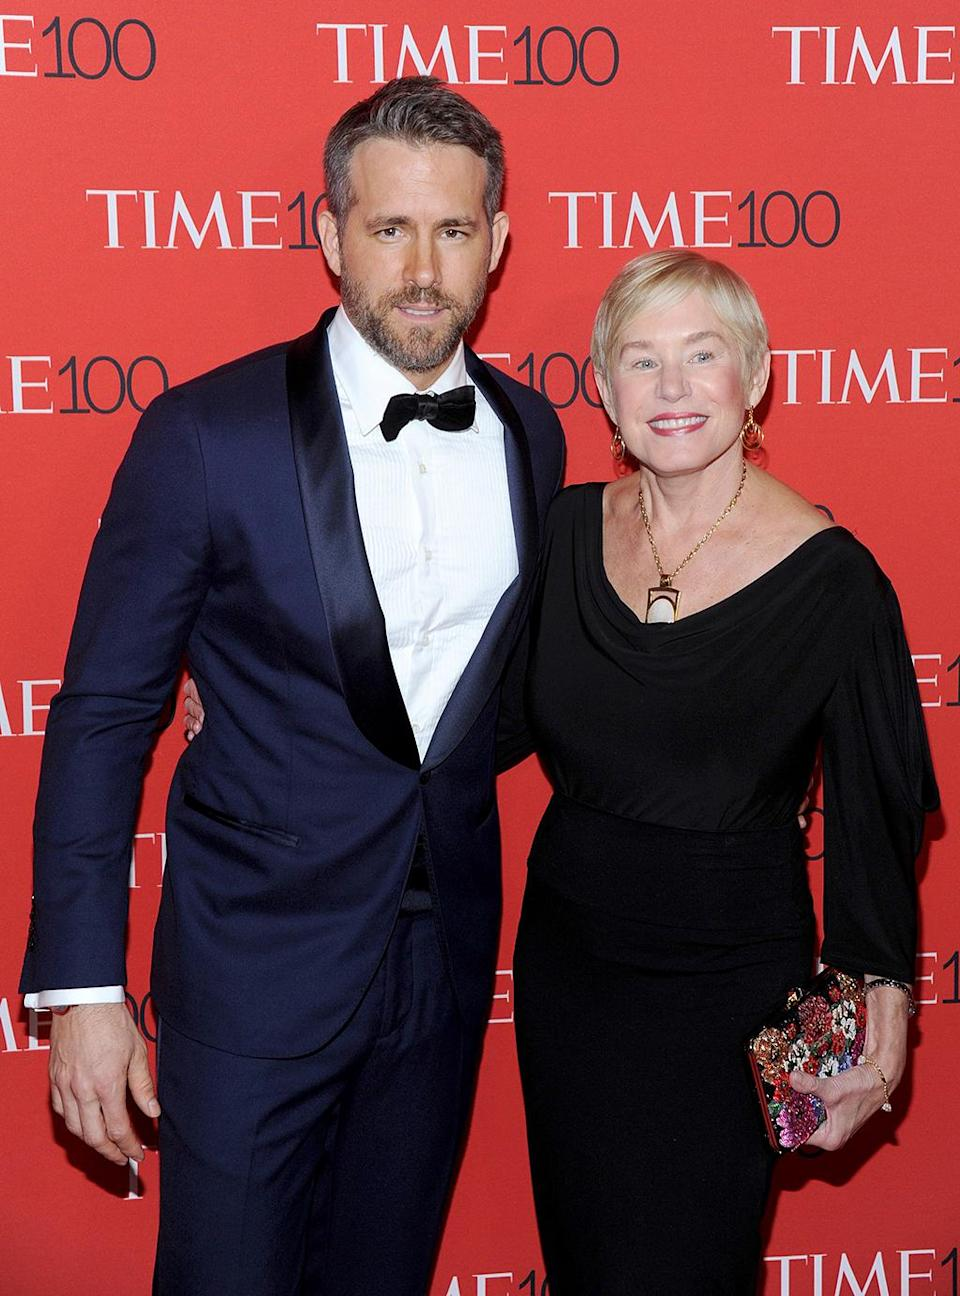 """<p>The influential <i>Deadpool</i> star brought his wife, Blake Lively, and his mom, Tammy Reynolds, along for the fun at the Time 100 Gala. Leslie Jones also snagged some time with Reynolds, whom she identified on Instagram as <a rel=""""nofollow noopener"""" href=""""https://www.instagram.com/p/BTWaQA7Dgzp/?taken-by=lesdogggg&hl=en"""" target=""""_blank"""" data-ylk=""""slk:her """"celebrity crush."""""""" class=""""link rapid-noclick-resp"""">her """"celebrity crush.""""</a> (Photo: MediaPunch/AKM-GSI) </p>"""